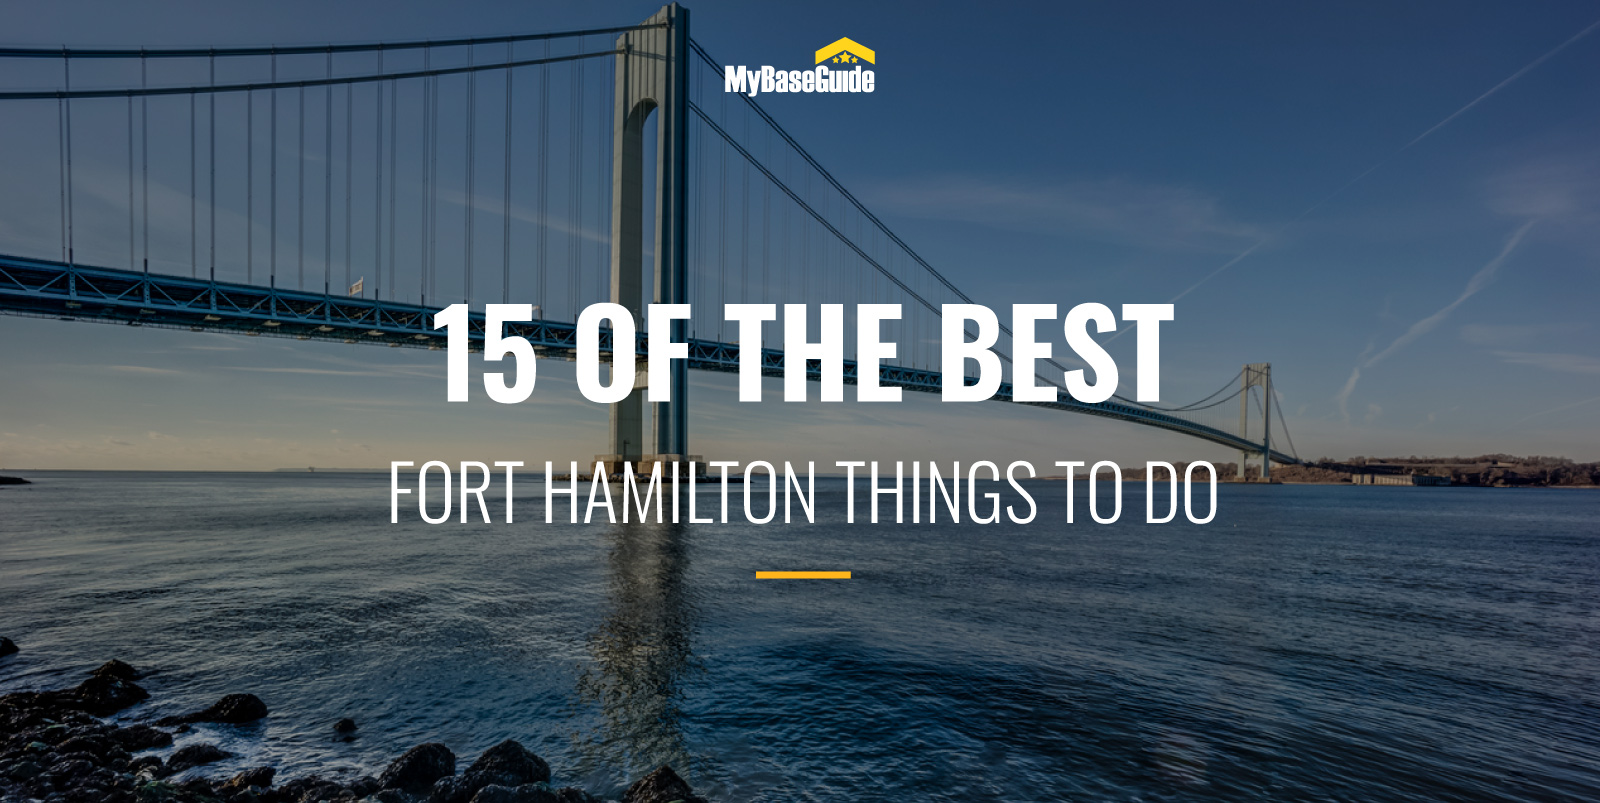 15 Of the Best Fort Hamilton Things to Do